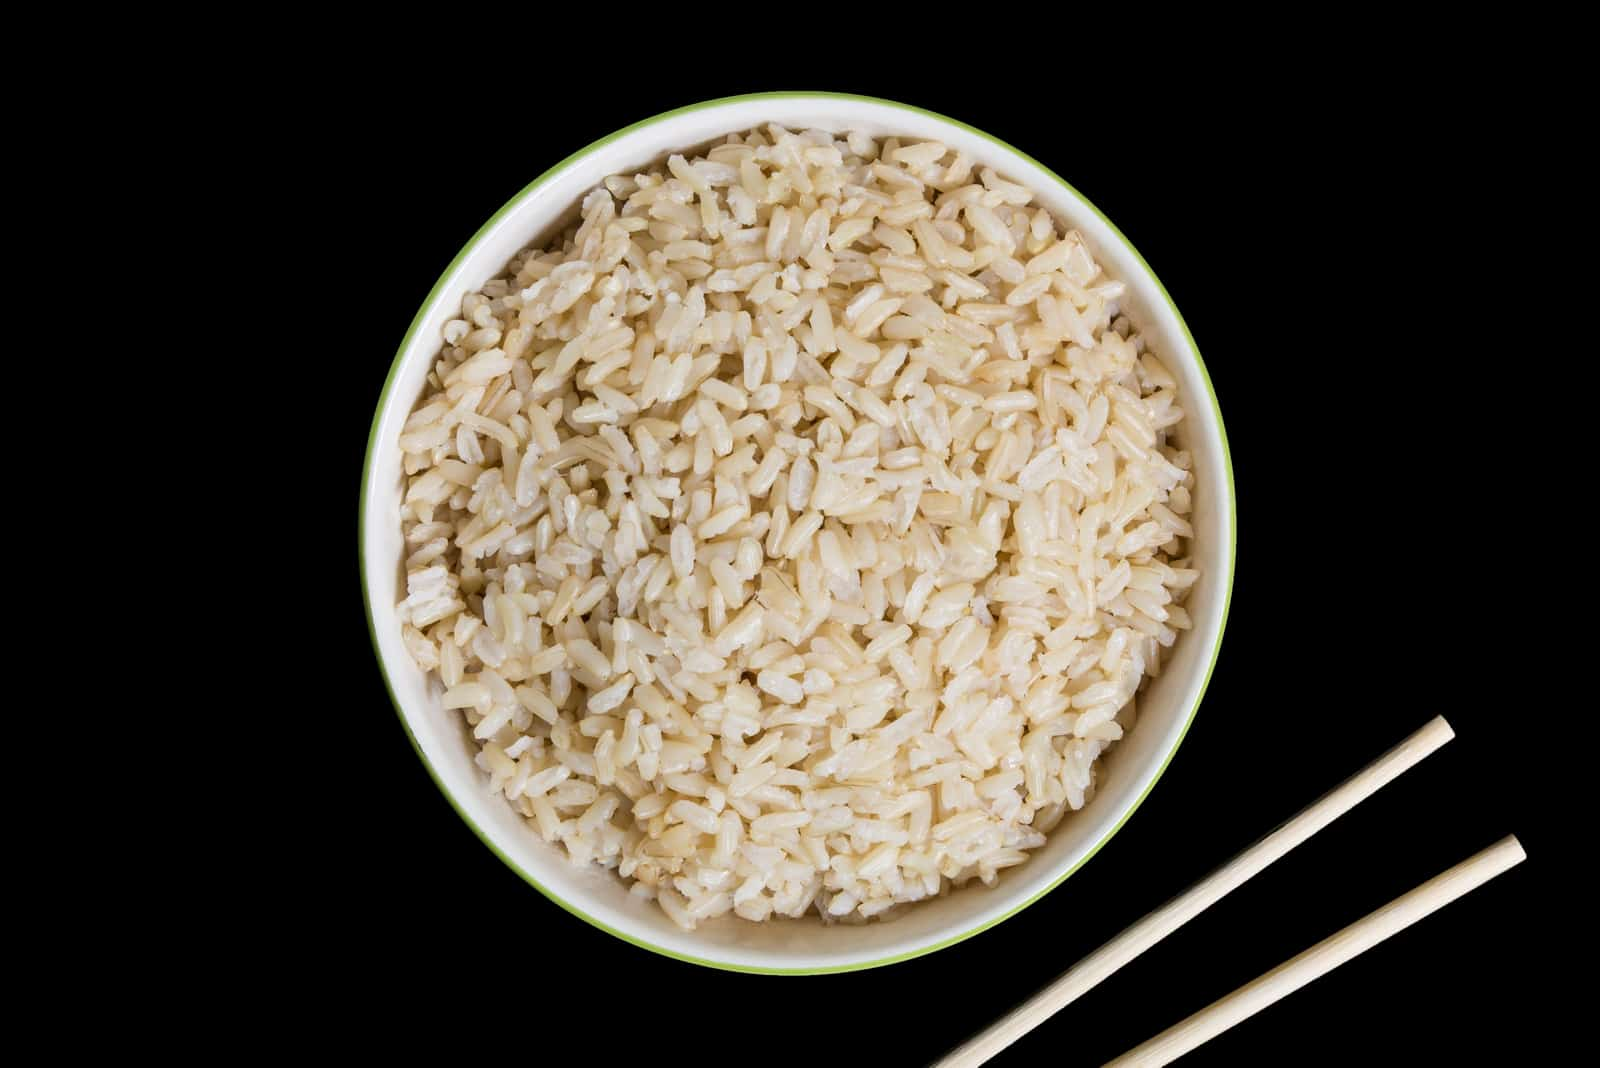 Brown Rice on Black Background